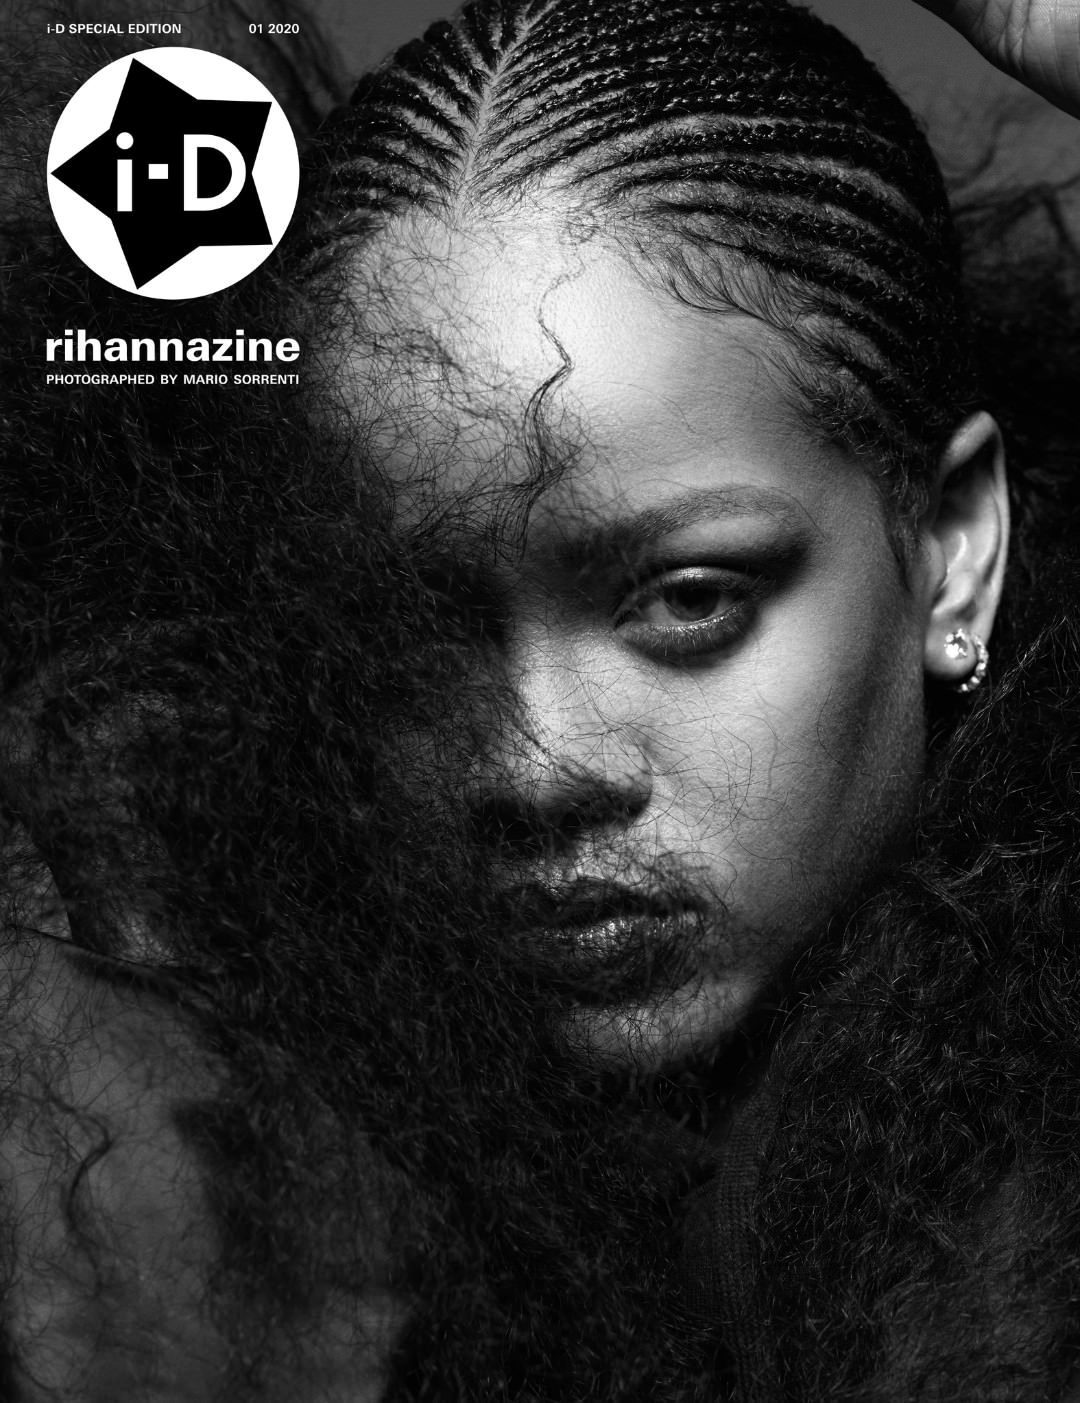 Rihanna i-D magazine 40th anniversary issue Rihannazine